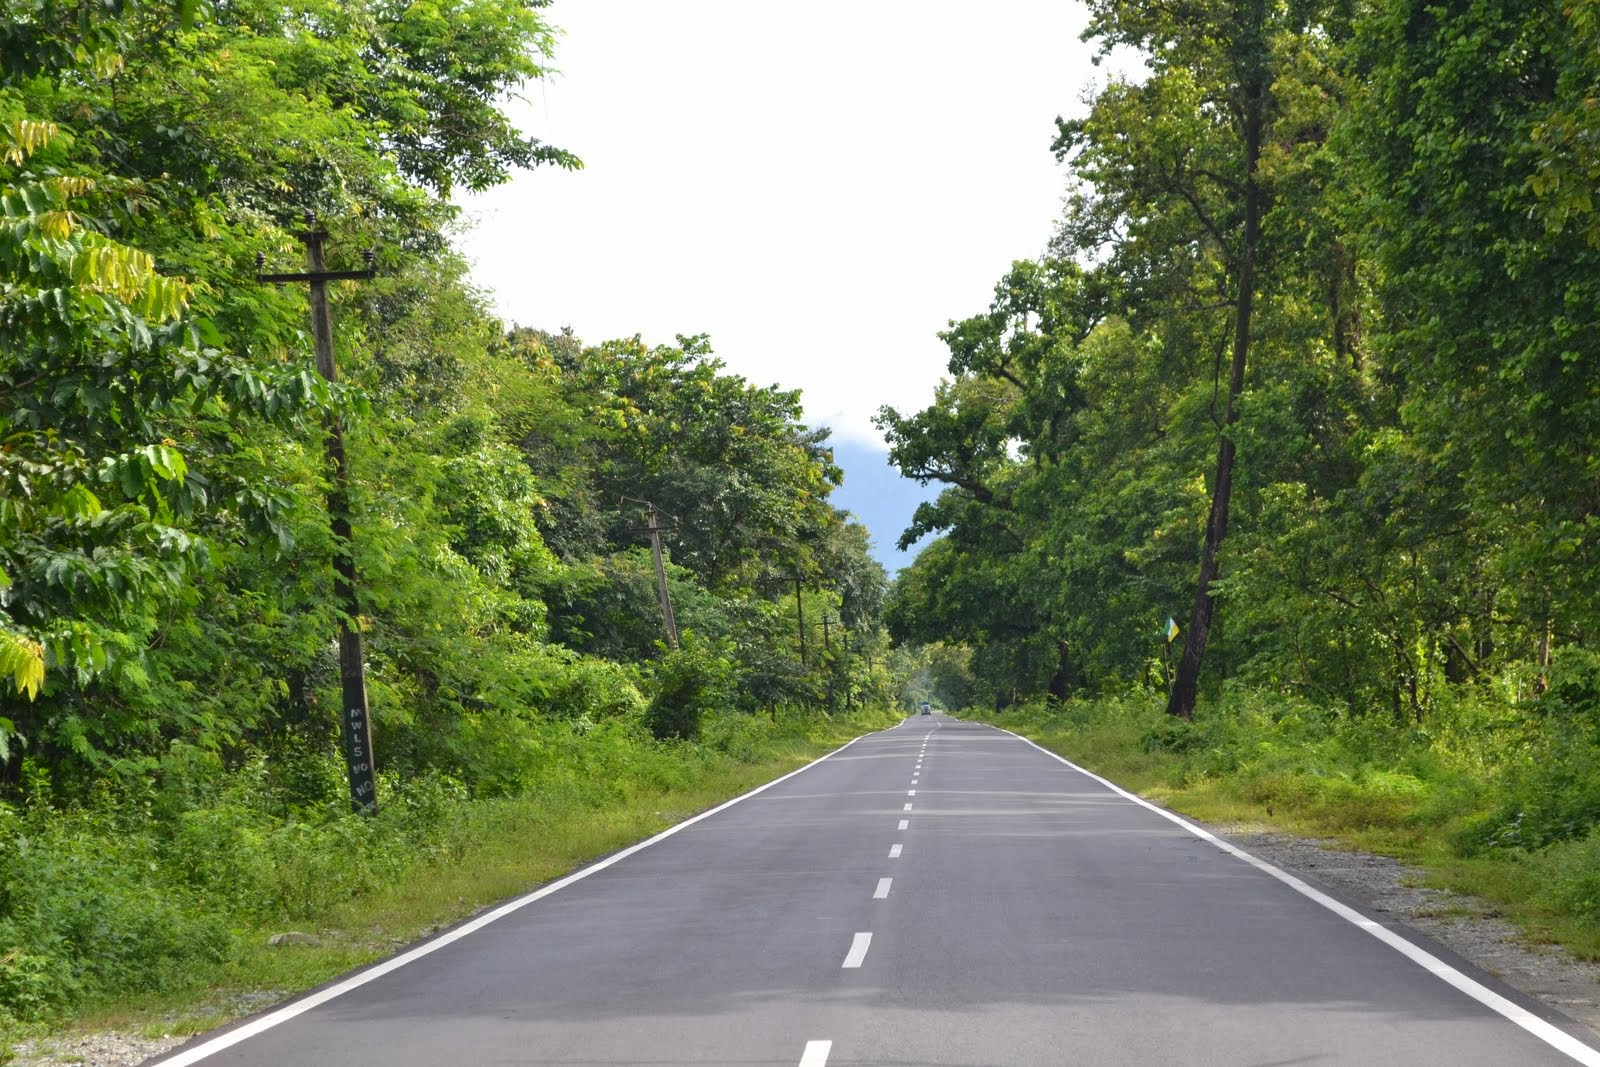 On-the-way-to-Gorumara-National-Park-Dooars